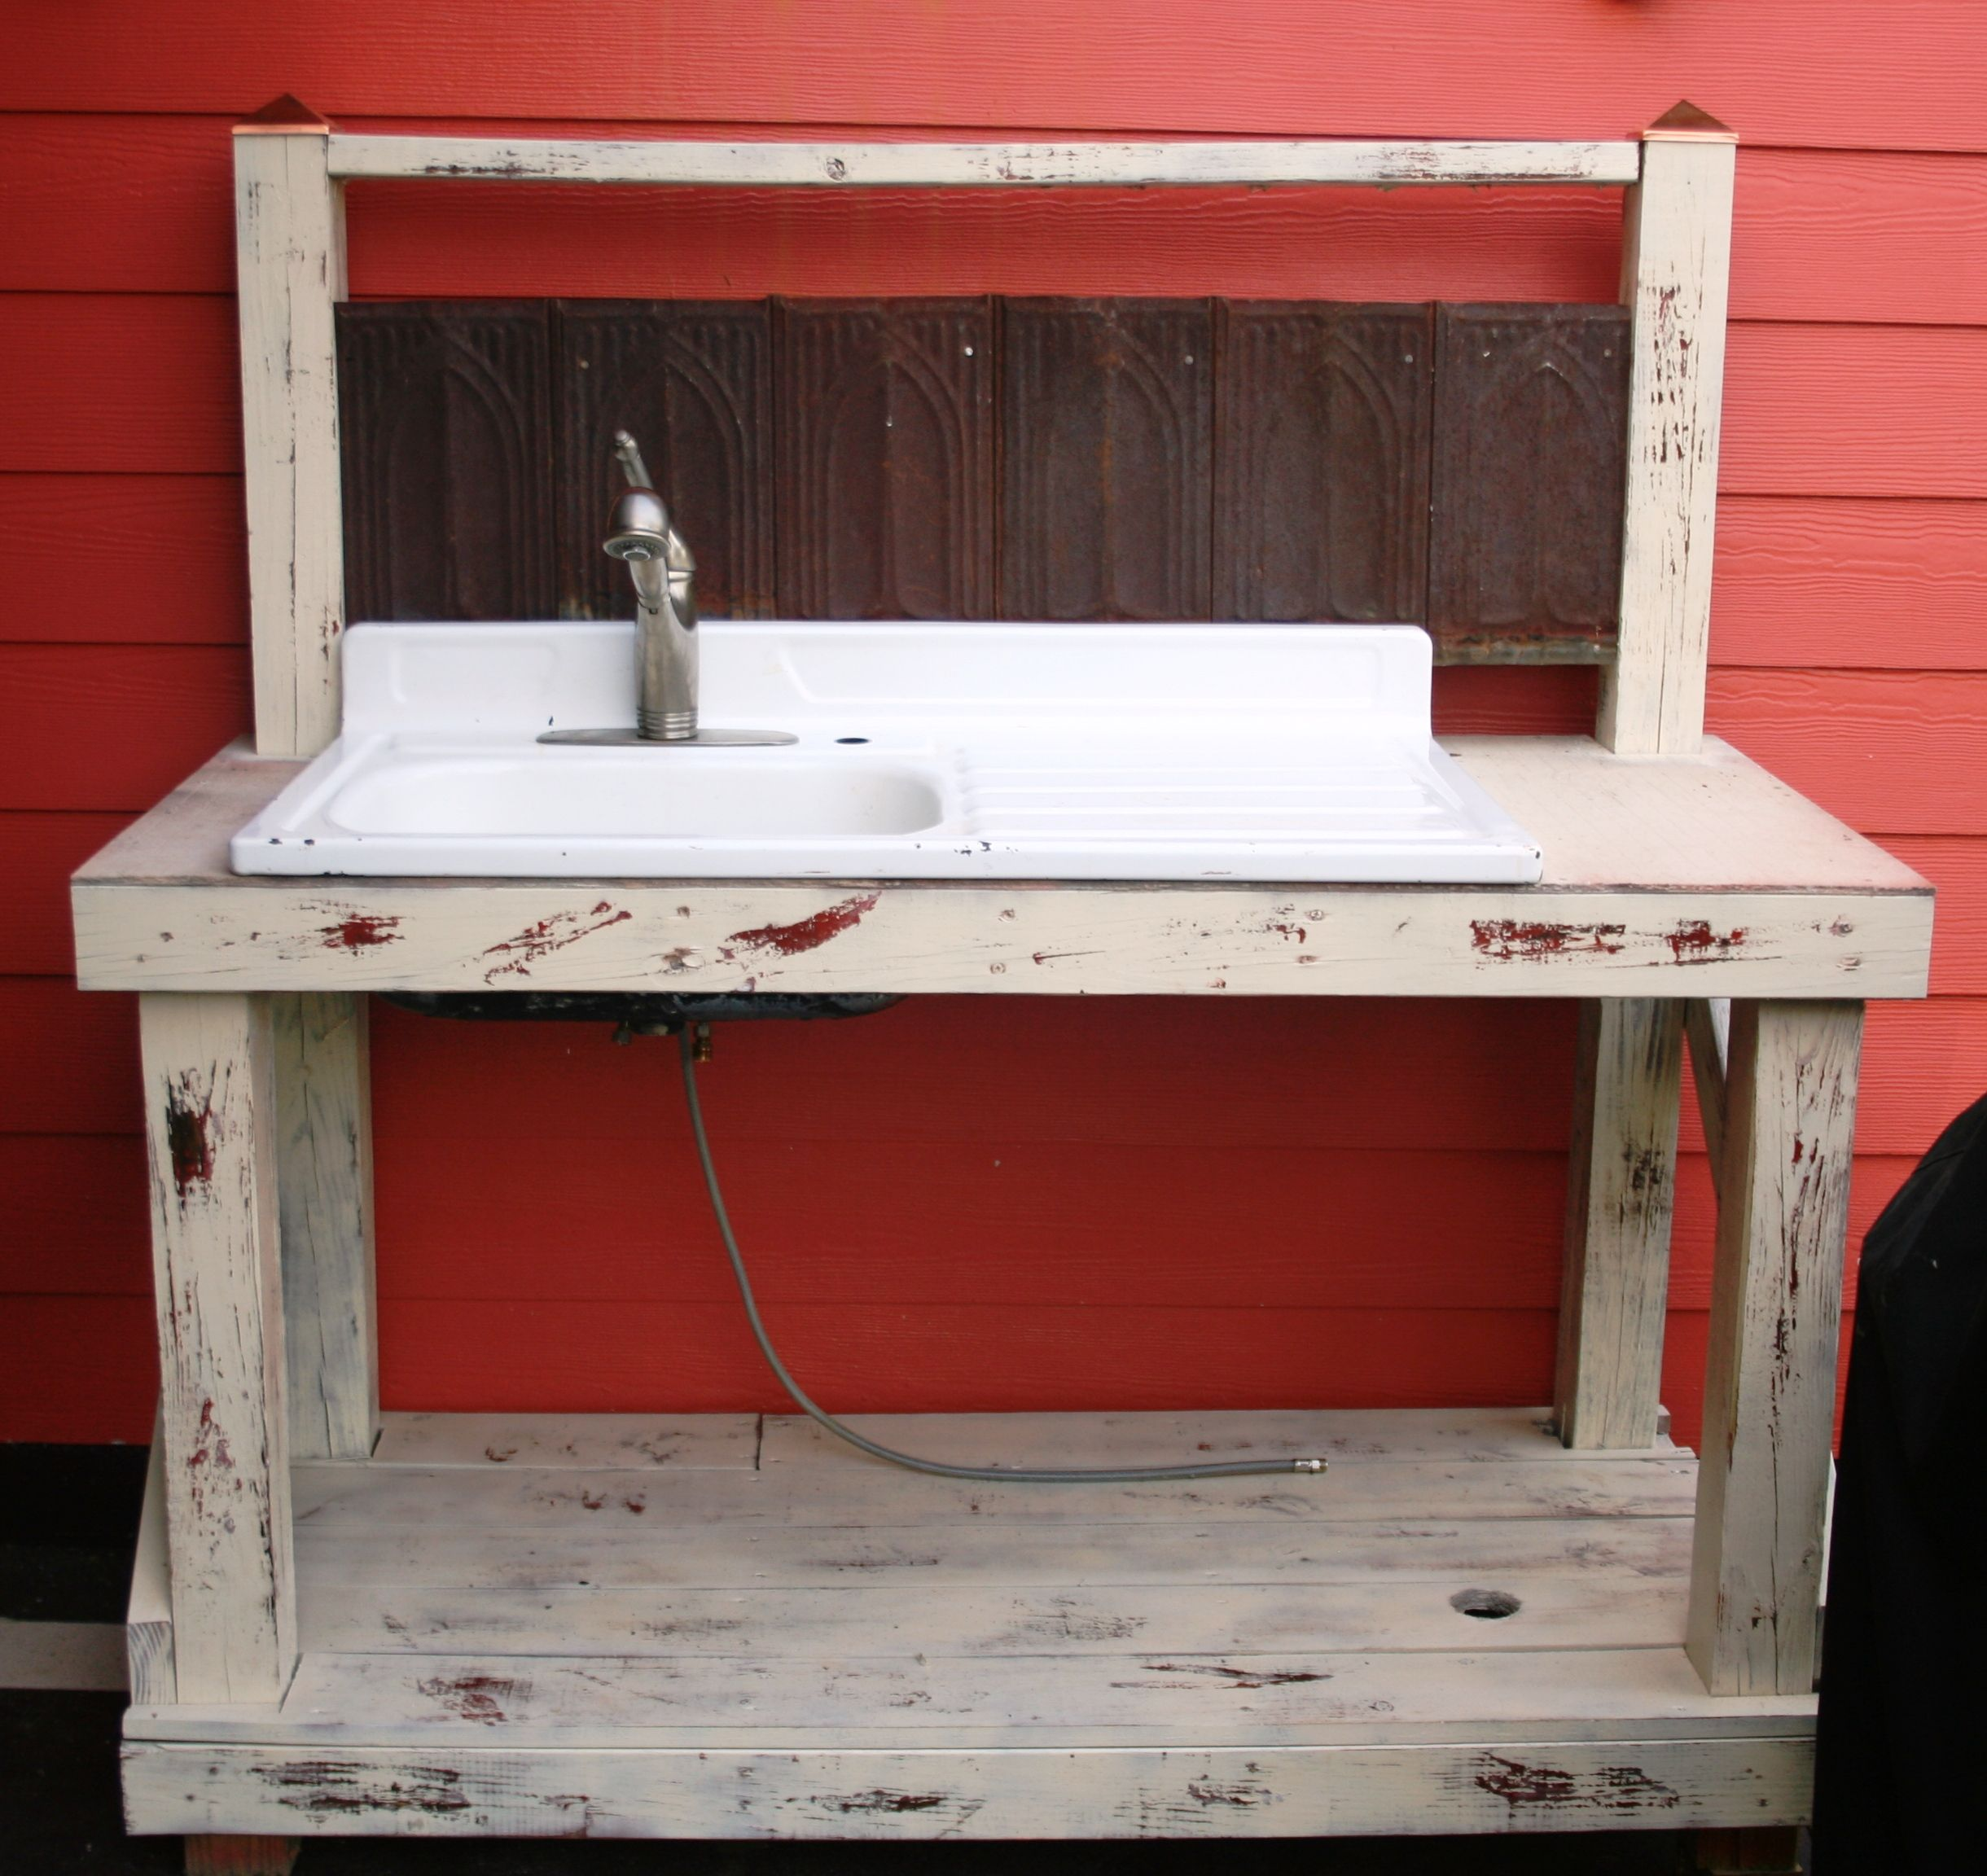 My Hubby Built This Outdoor Kitchen For The Back Porch We Found Old Tin From A Church Old Sink From His G Outdoor Kitchen Sink Outdoor Sinks Outdoor Kitchen